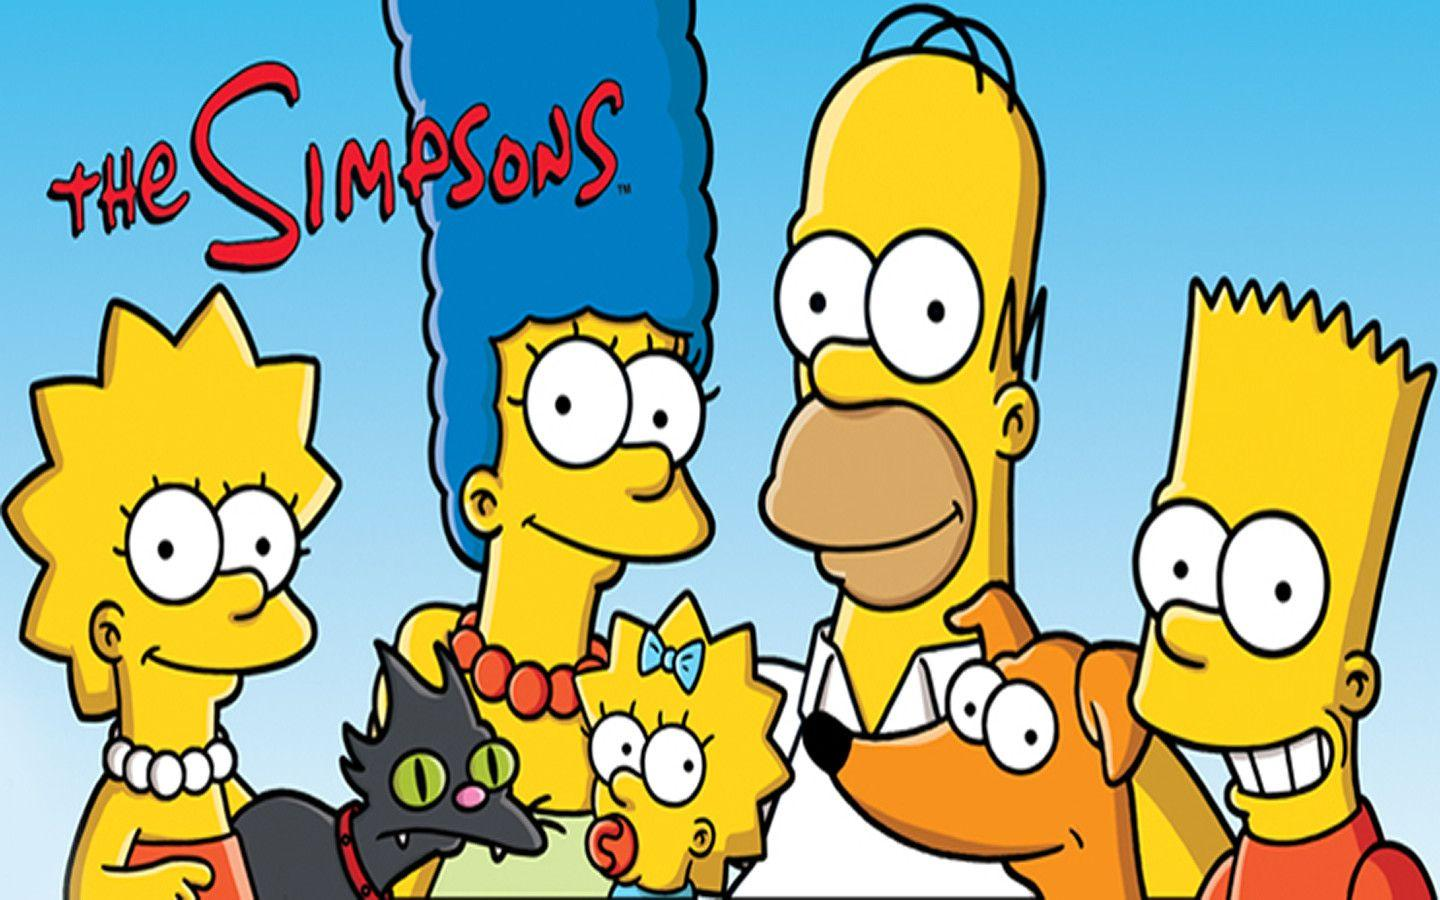 The Simpsons Family Introduction Desktop Wallpapers HD